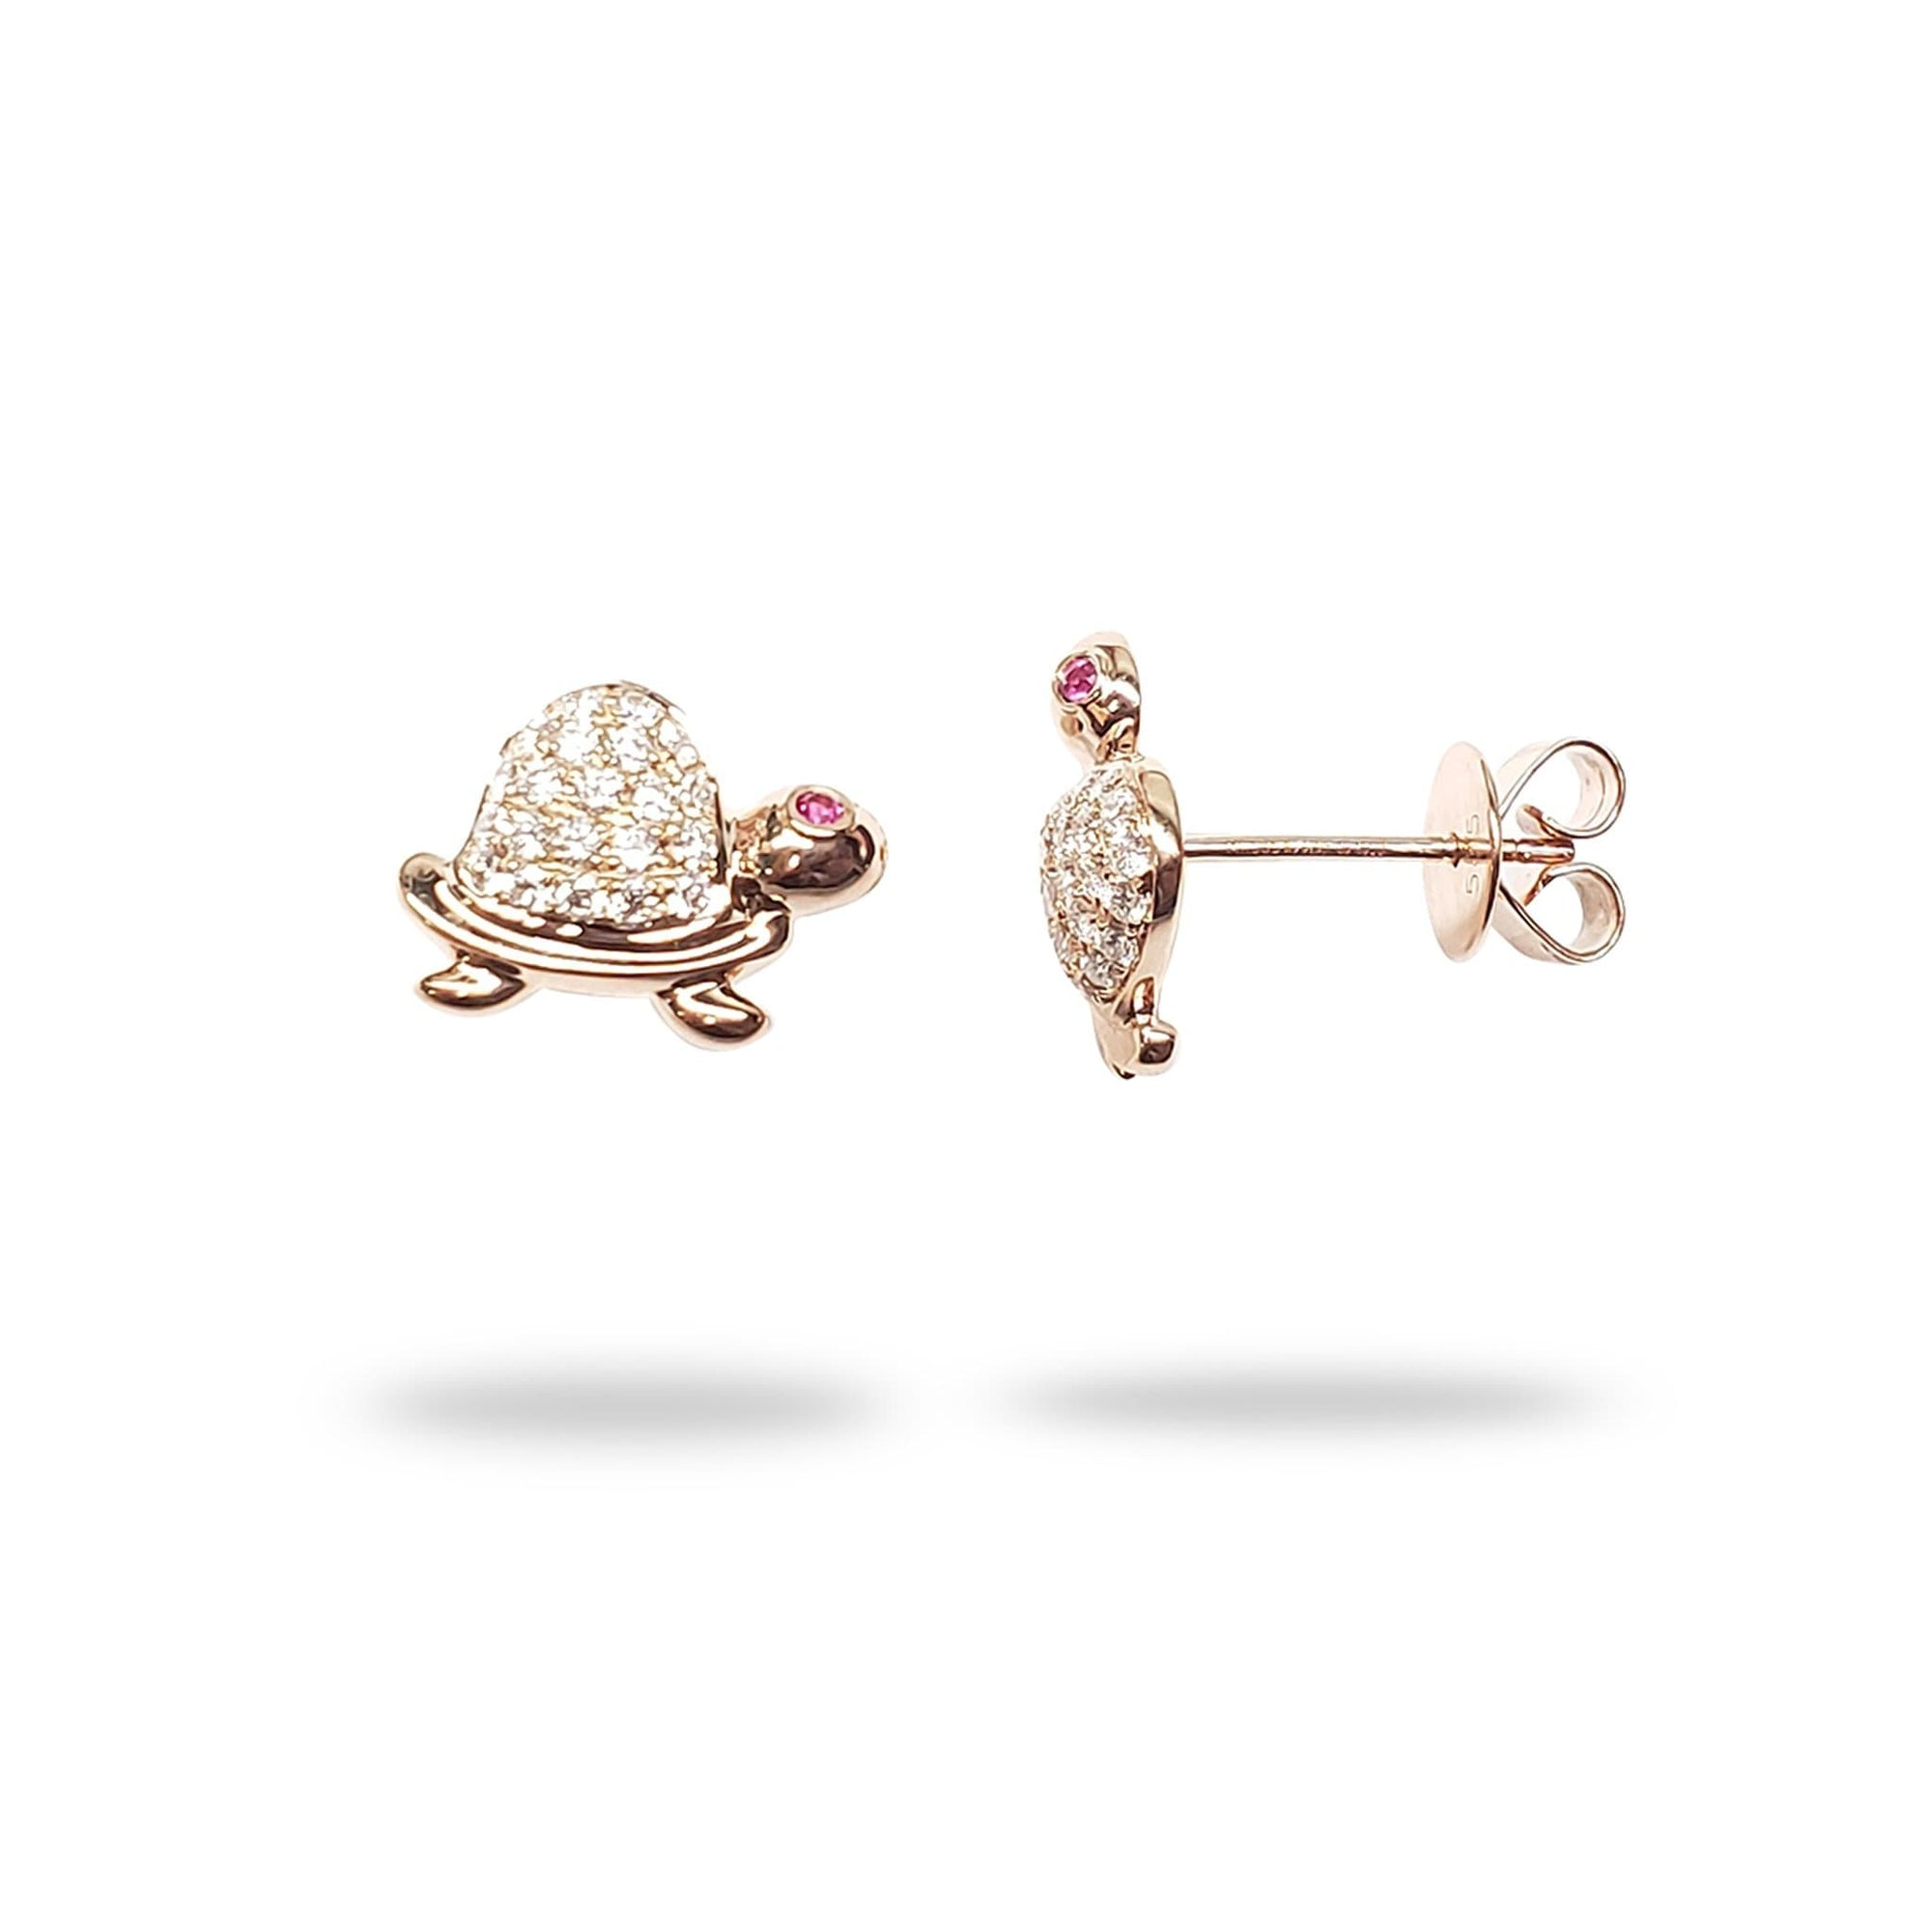 Turtle Pink Sapphire Earrings with Diamonds in 14K Rose Gold - Maui Divers Jewelry